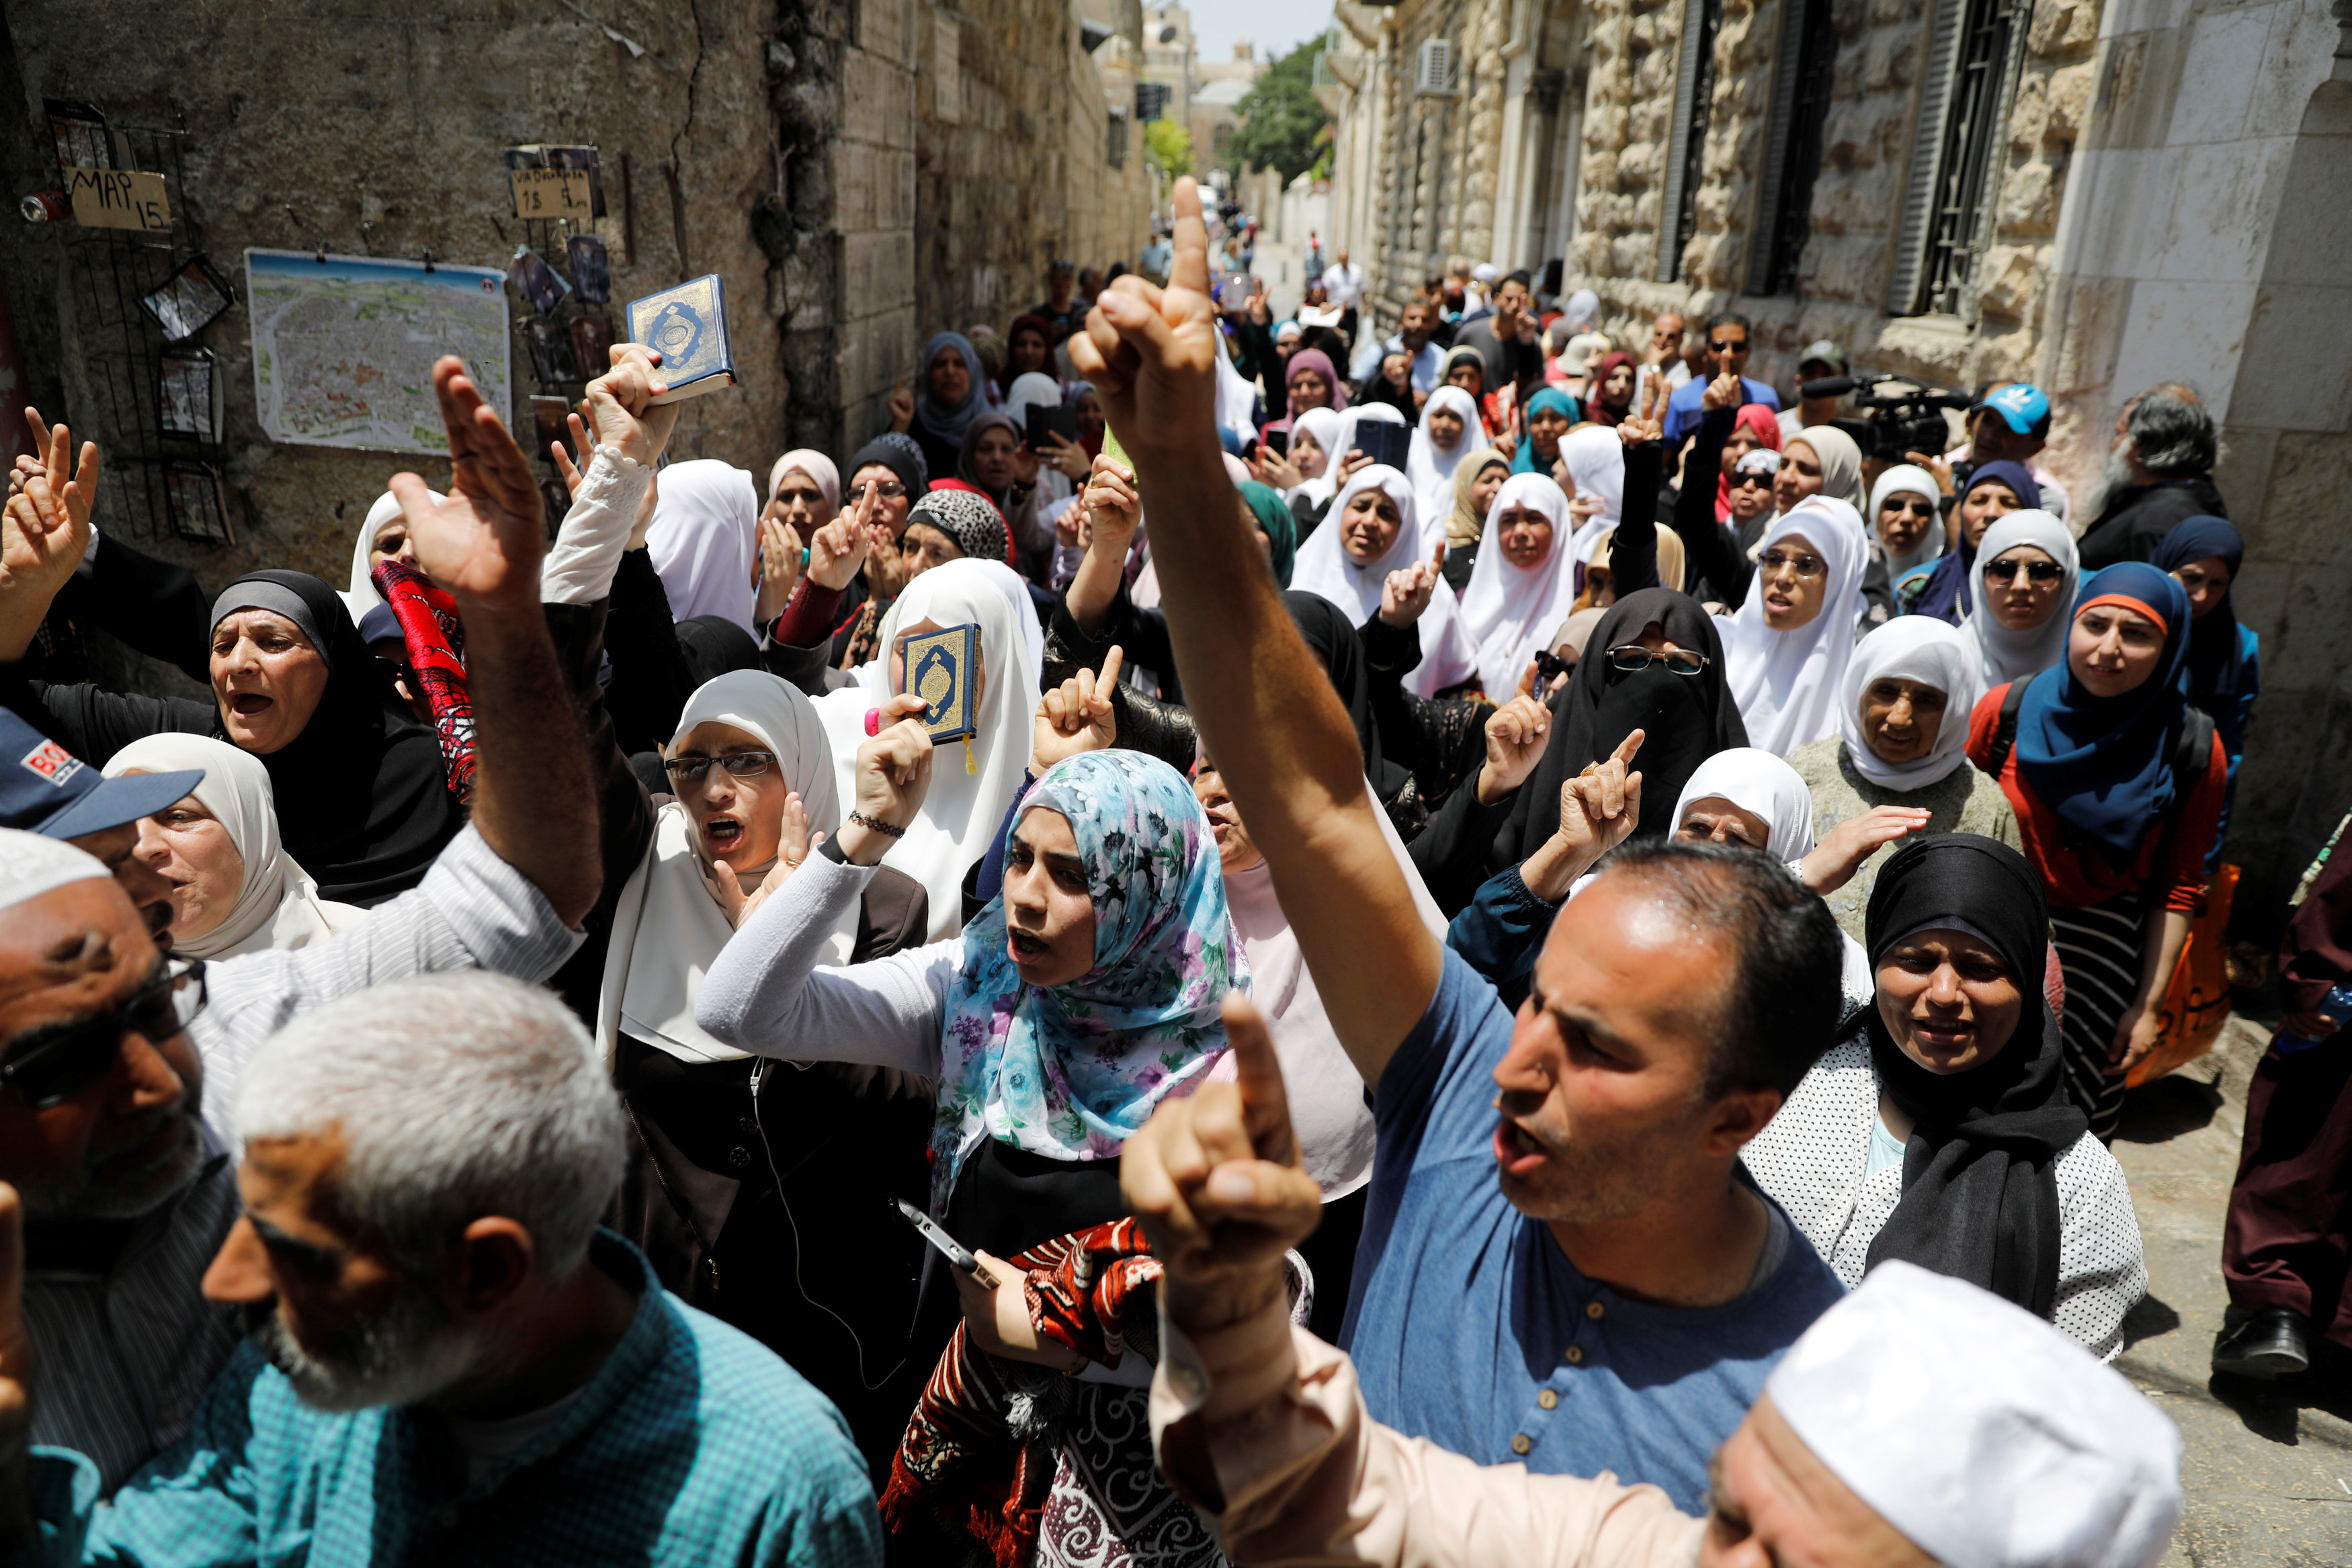 Palestinians shout slogans during a protest over Israel's new security measures at the compound housing al-Aqsa mosque, known to Muslims as Noble Sanctuary and to Jews as Temple Mount, in Jerusalem's Old City July 20, 2017. REUTERS/Ronen Zvulun